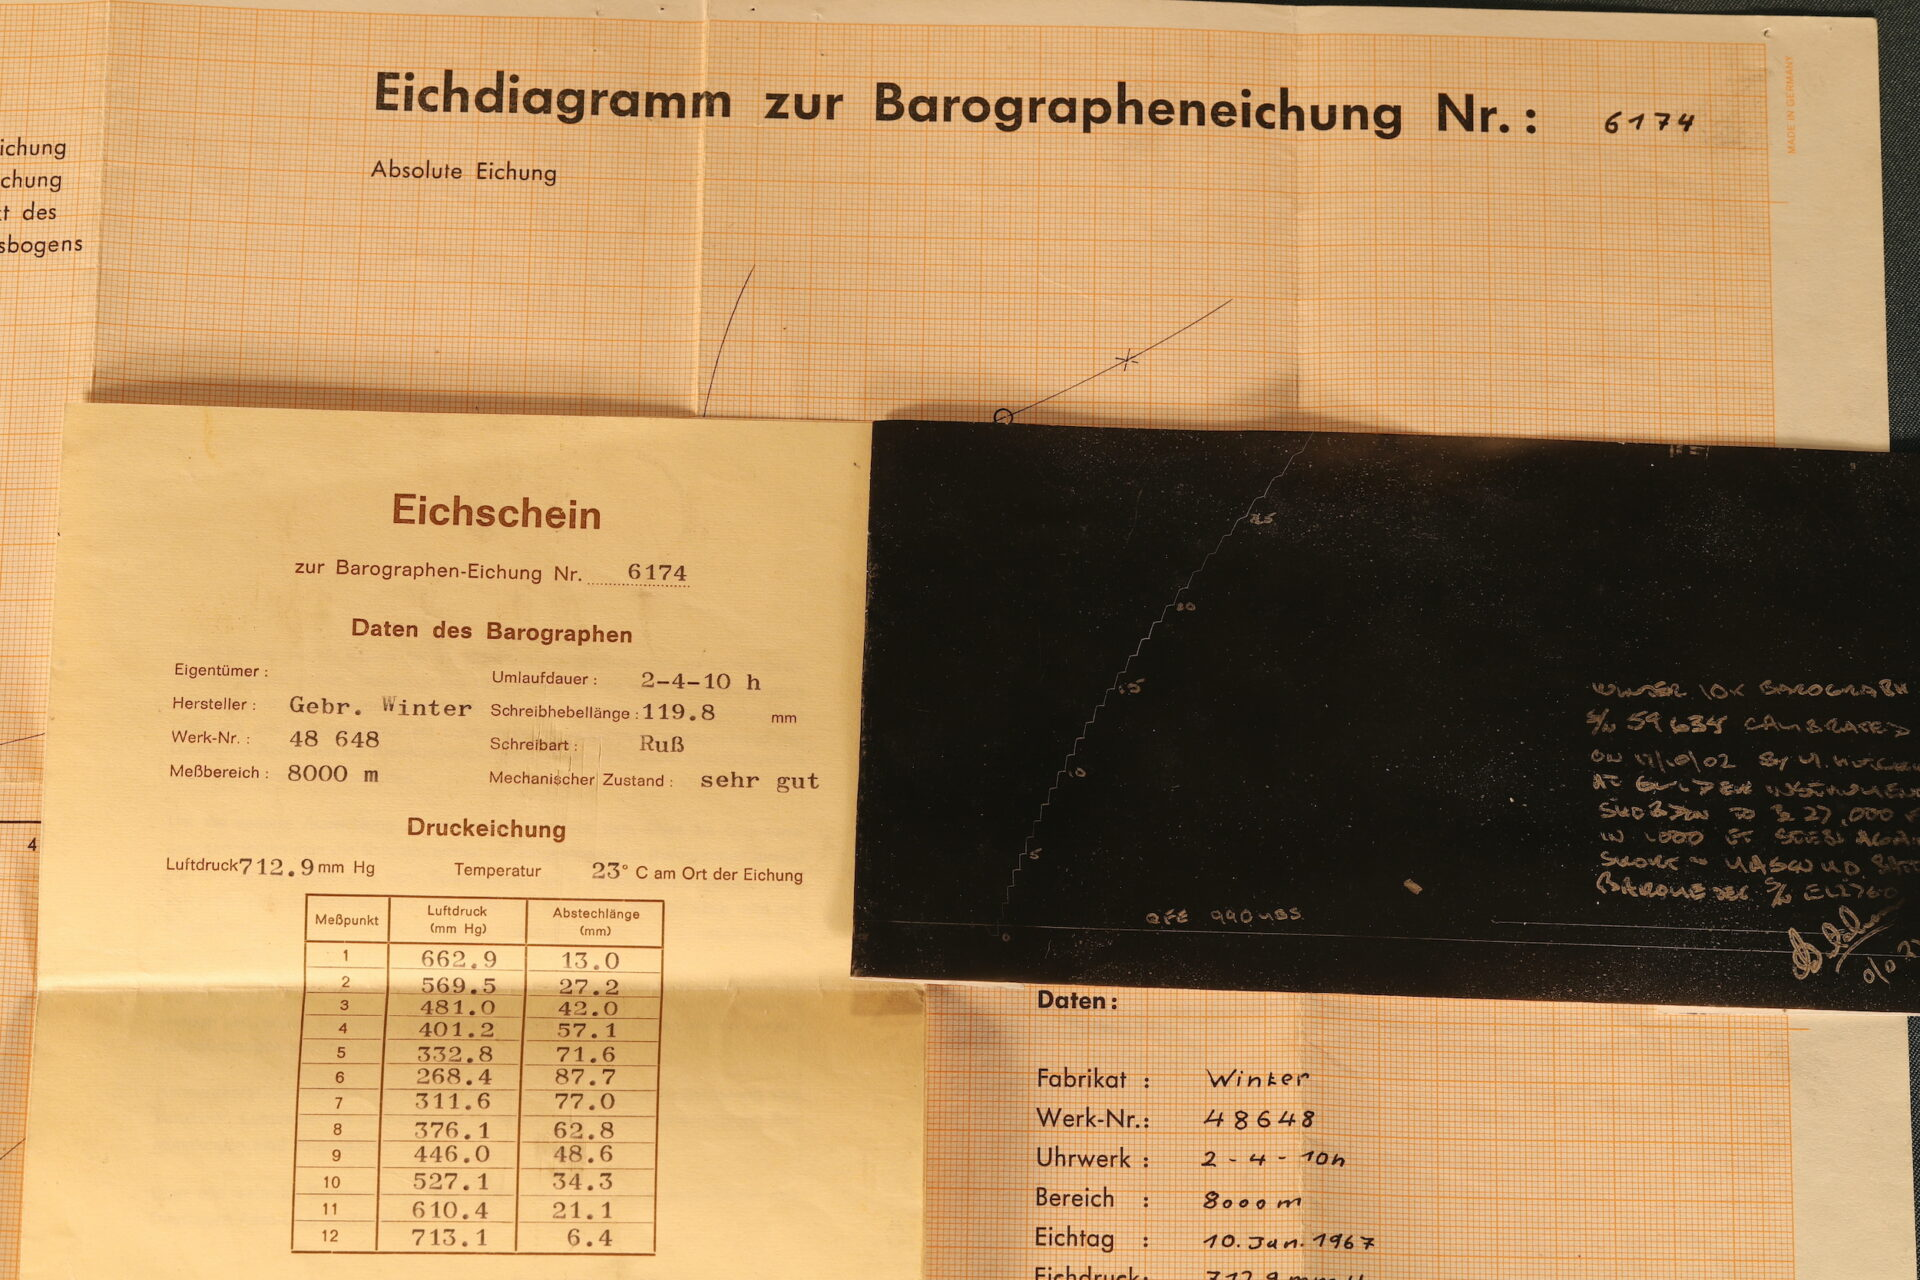 Image of test certificates for Winter Height Recorder No 59635 c1930 and another height recorder